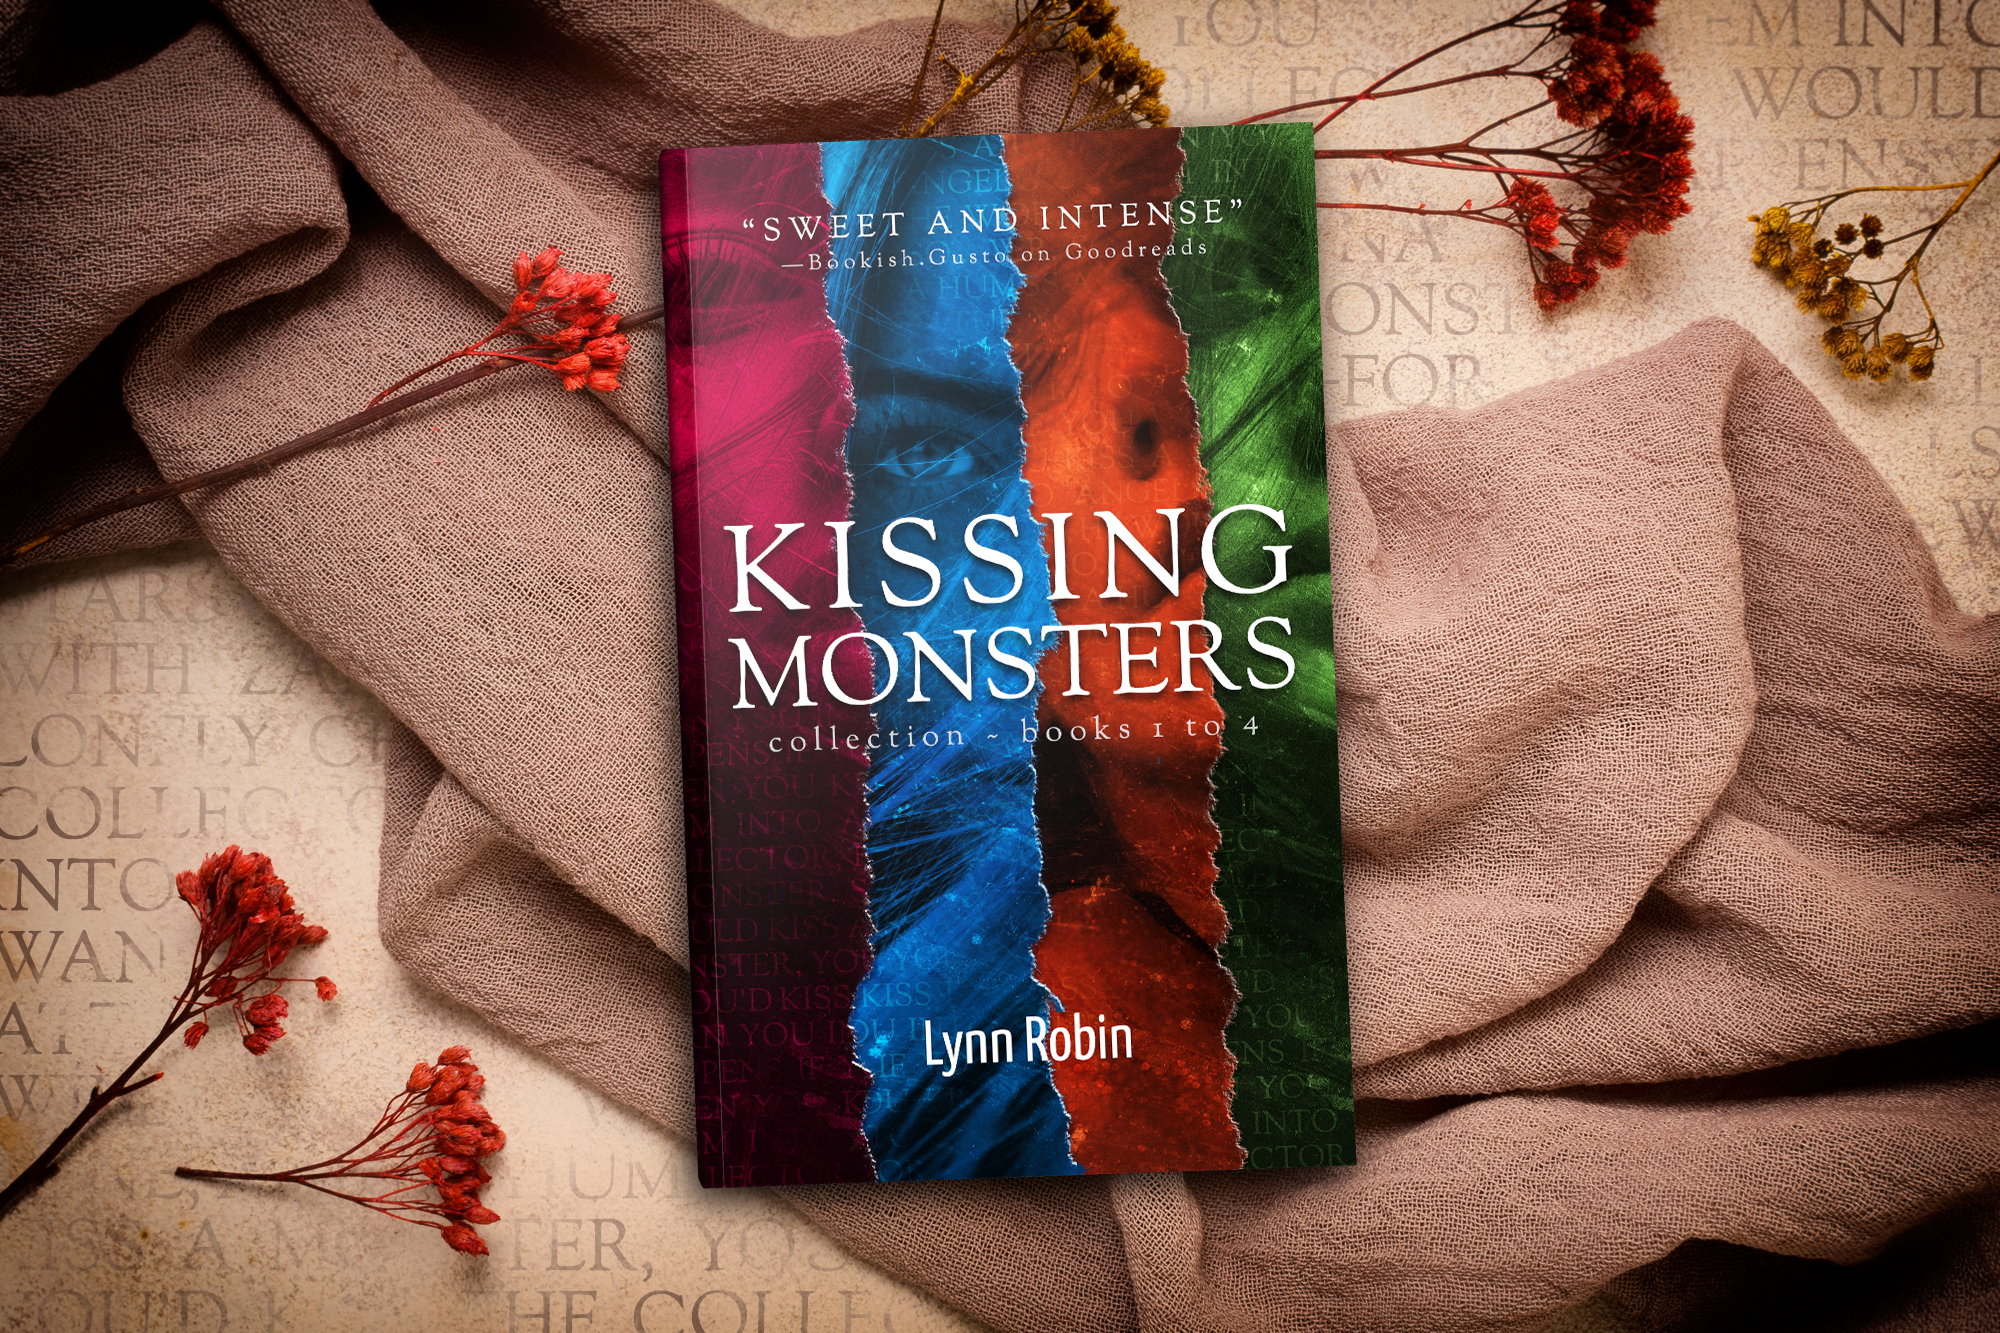 Kissing Monsters Collection (KM Col. #1) & KISSING NIGHTMARES (Kissing Monsters #5): Official cover reveals and release dates